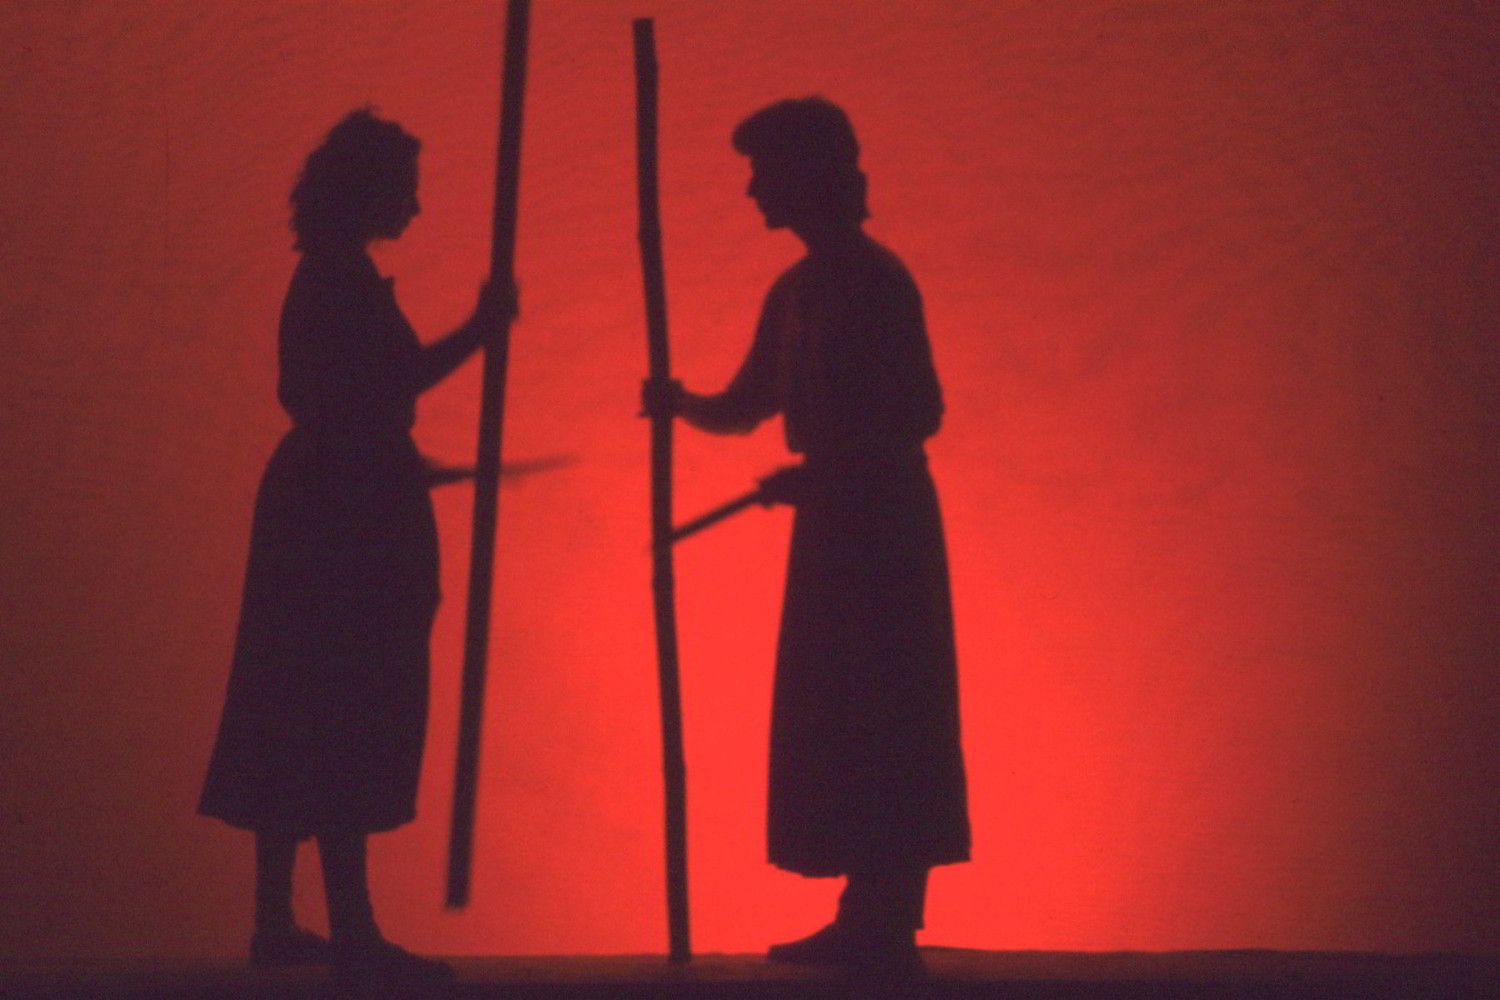 shadows of two people holding staves in red light